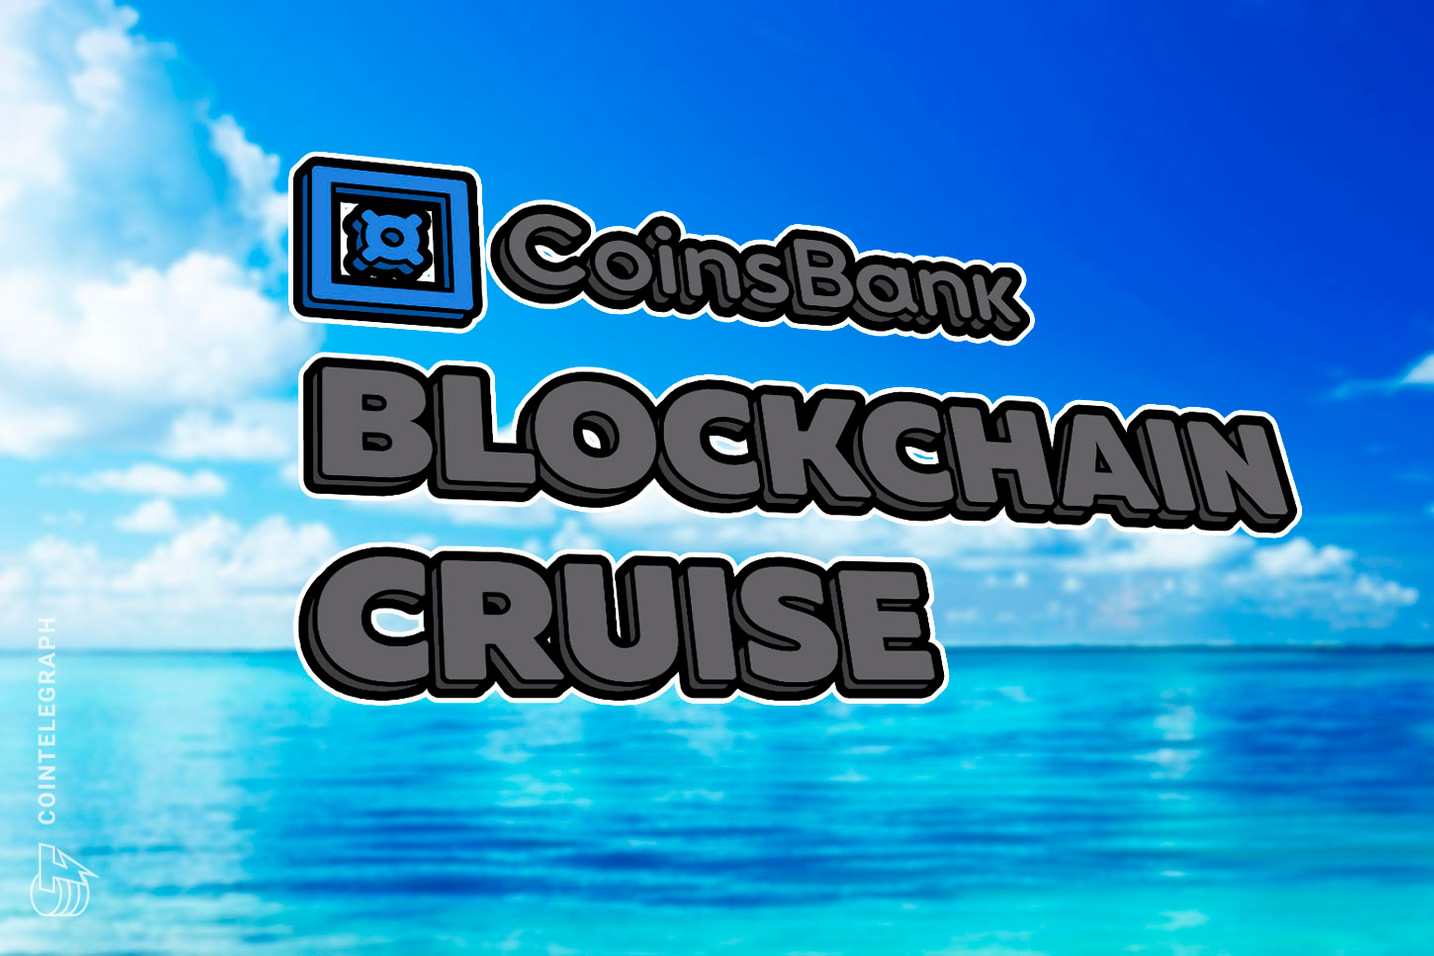 Four-Day Blockchain Cruise Brings John McAfee and Industry Leaders Aboard